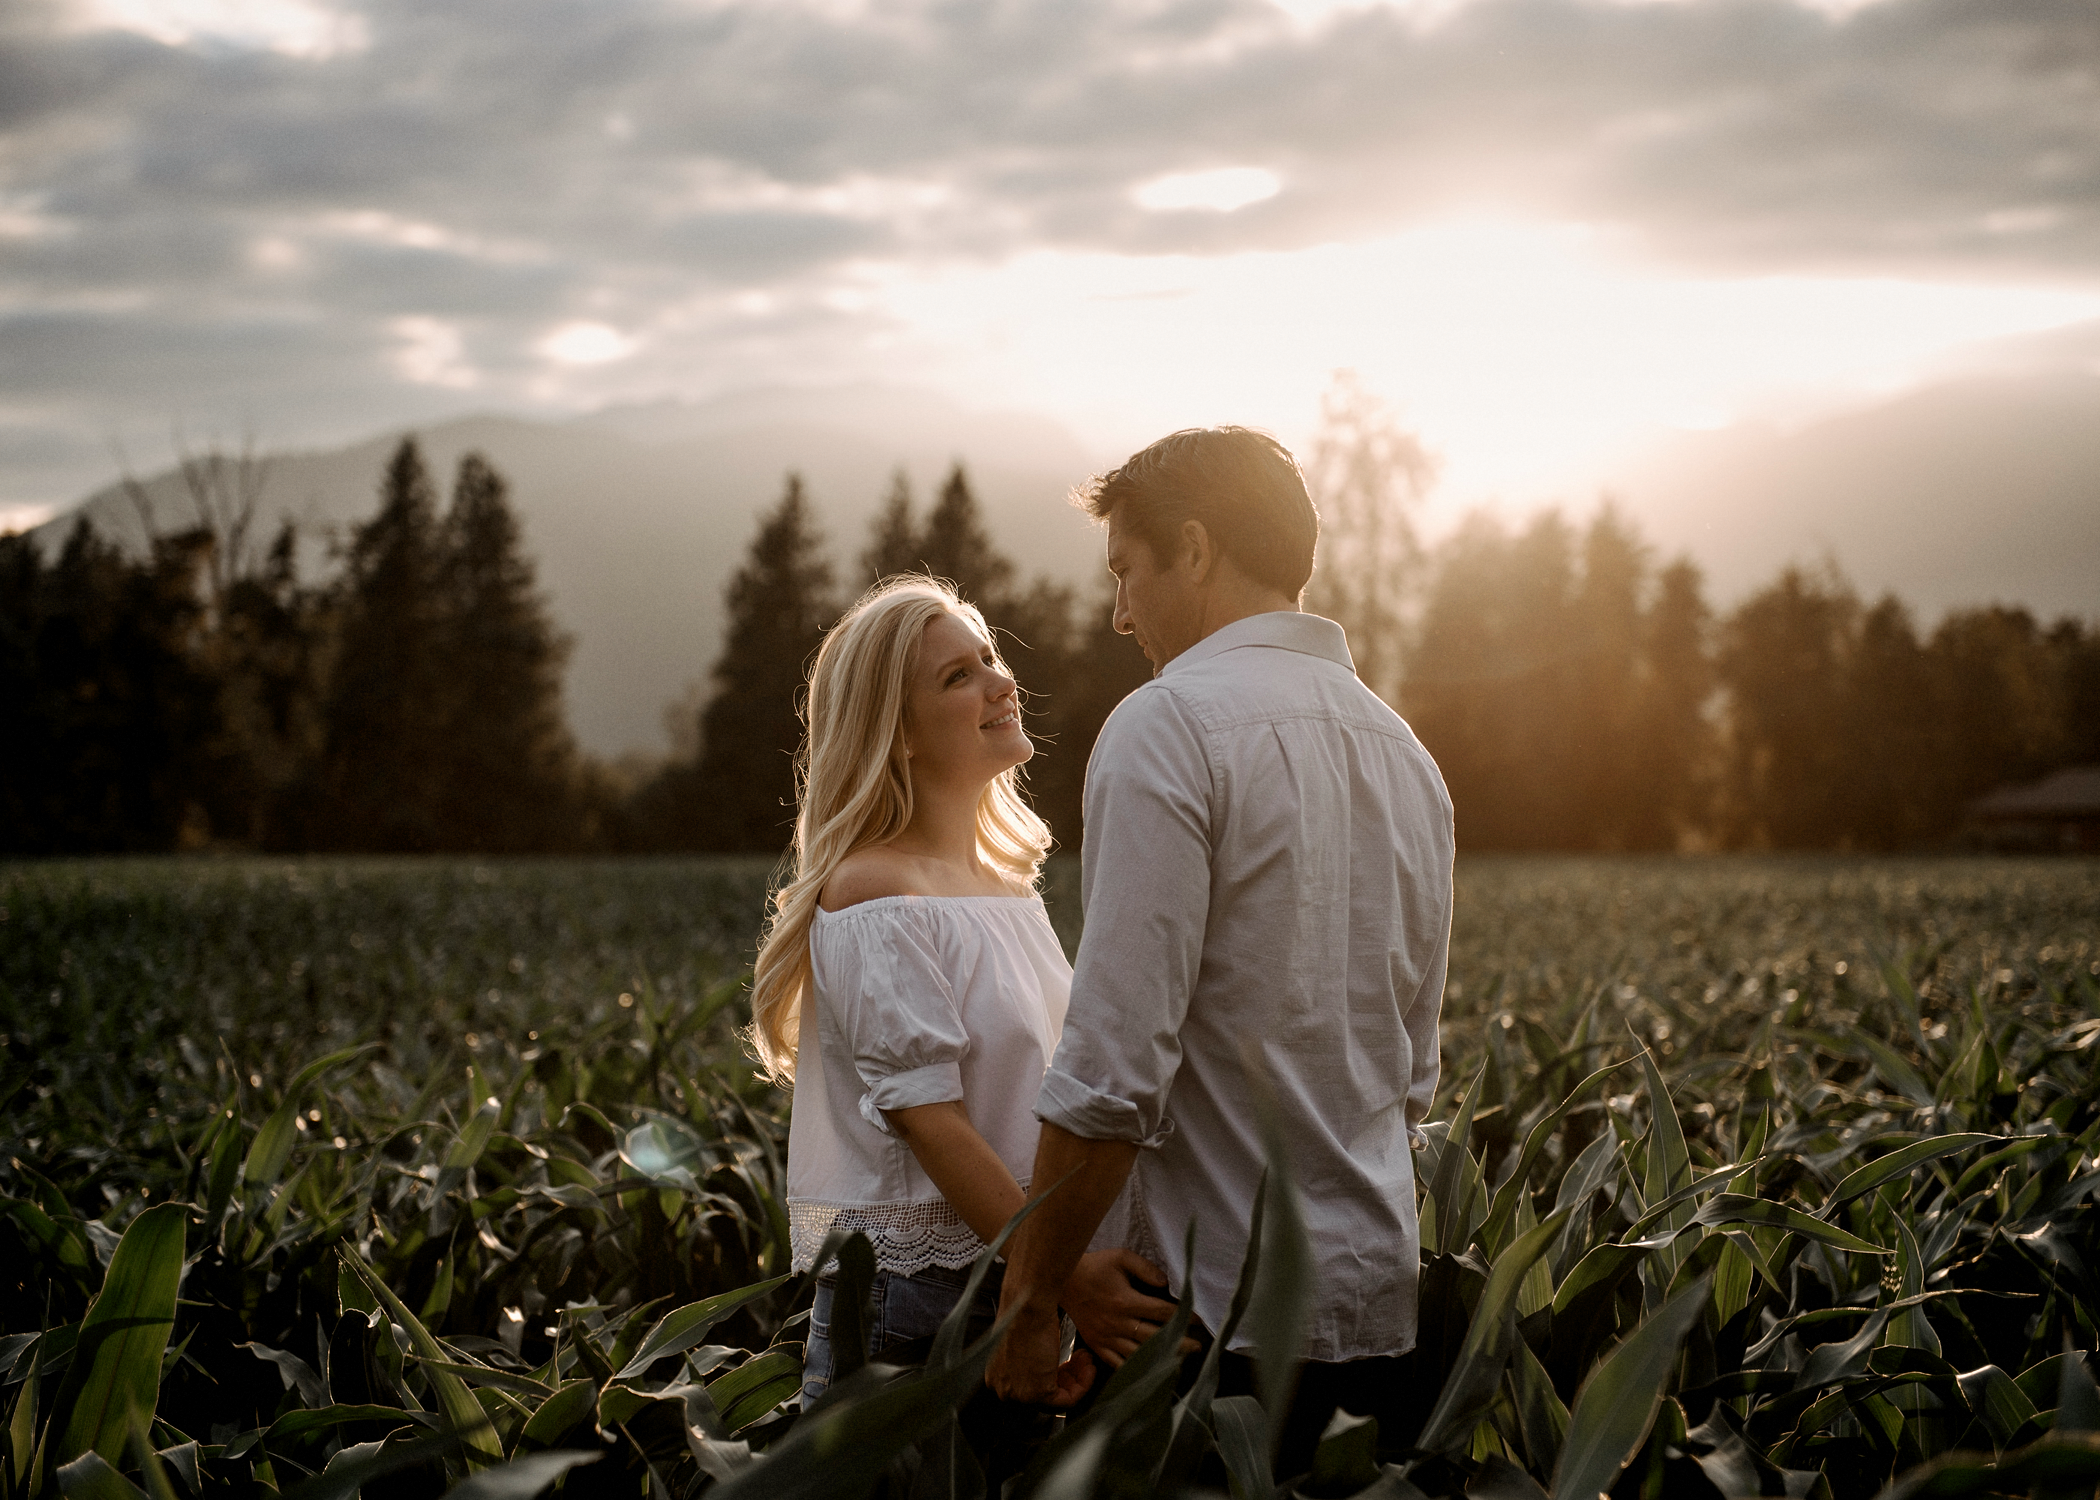 081-kaoverii-silva-ED-prewedding-vancouver-photography-chilliwack-blog.png